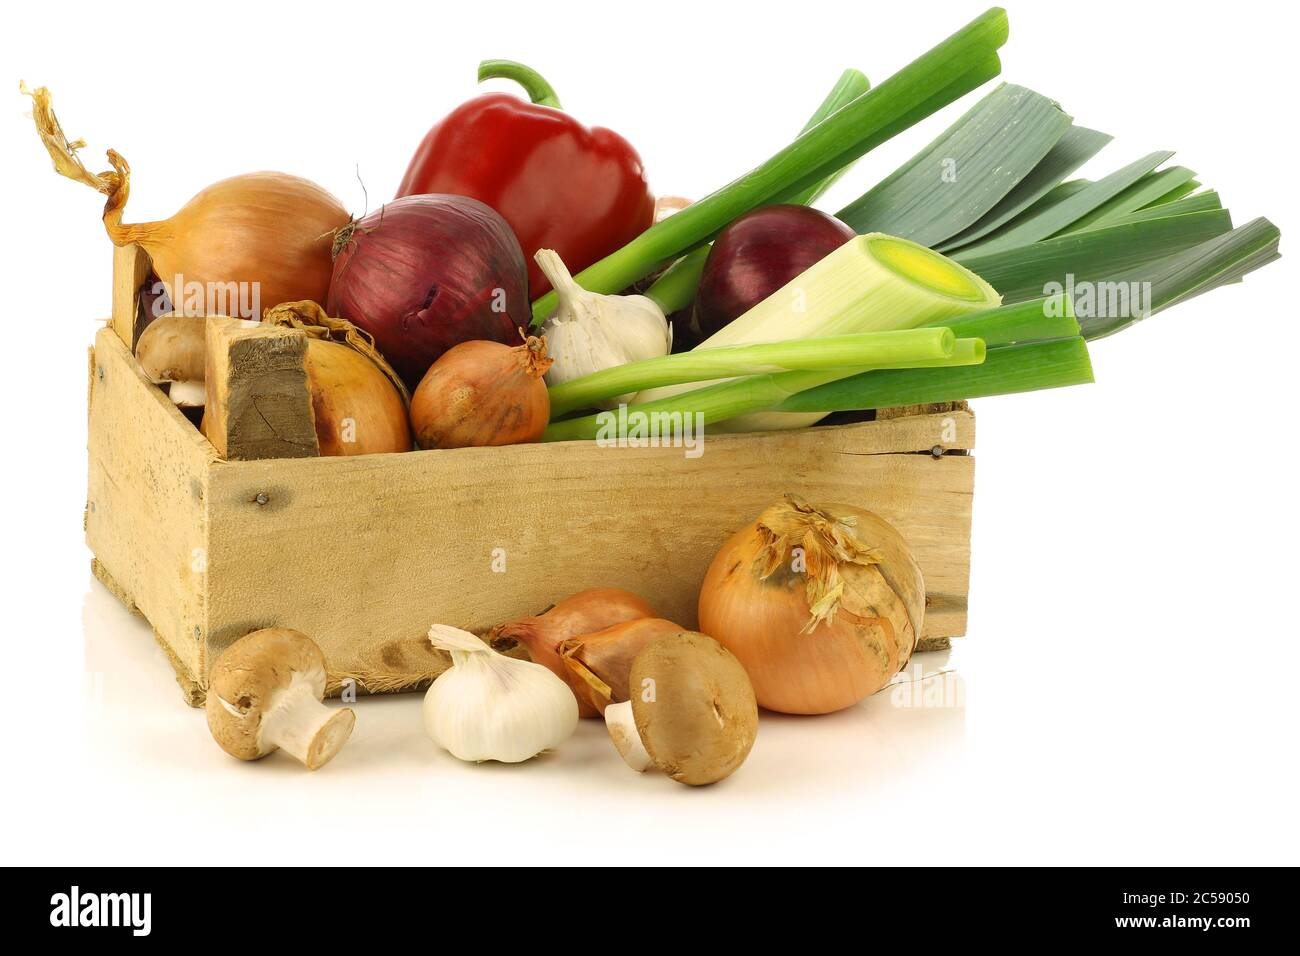 fresh assorted vegetables in a wooden crate on a white background Stock Photo